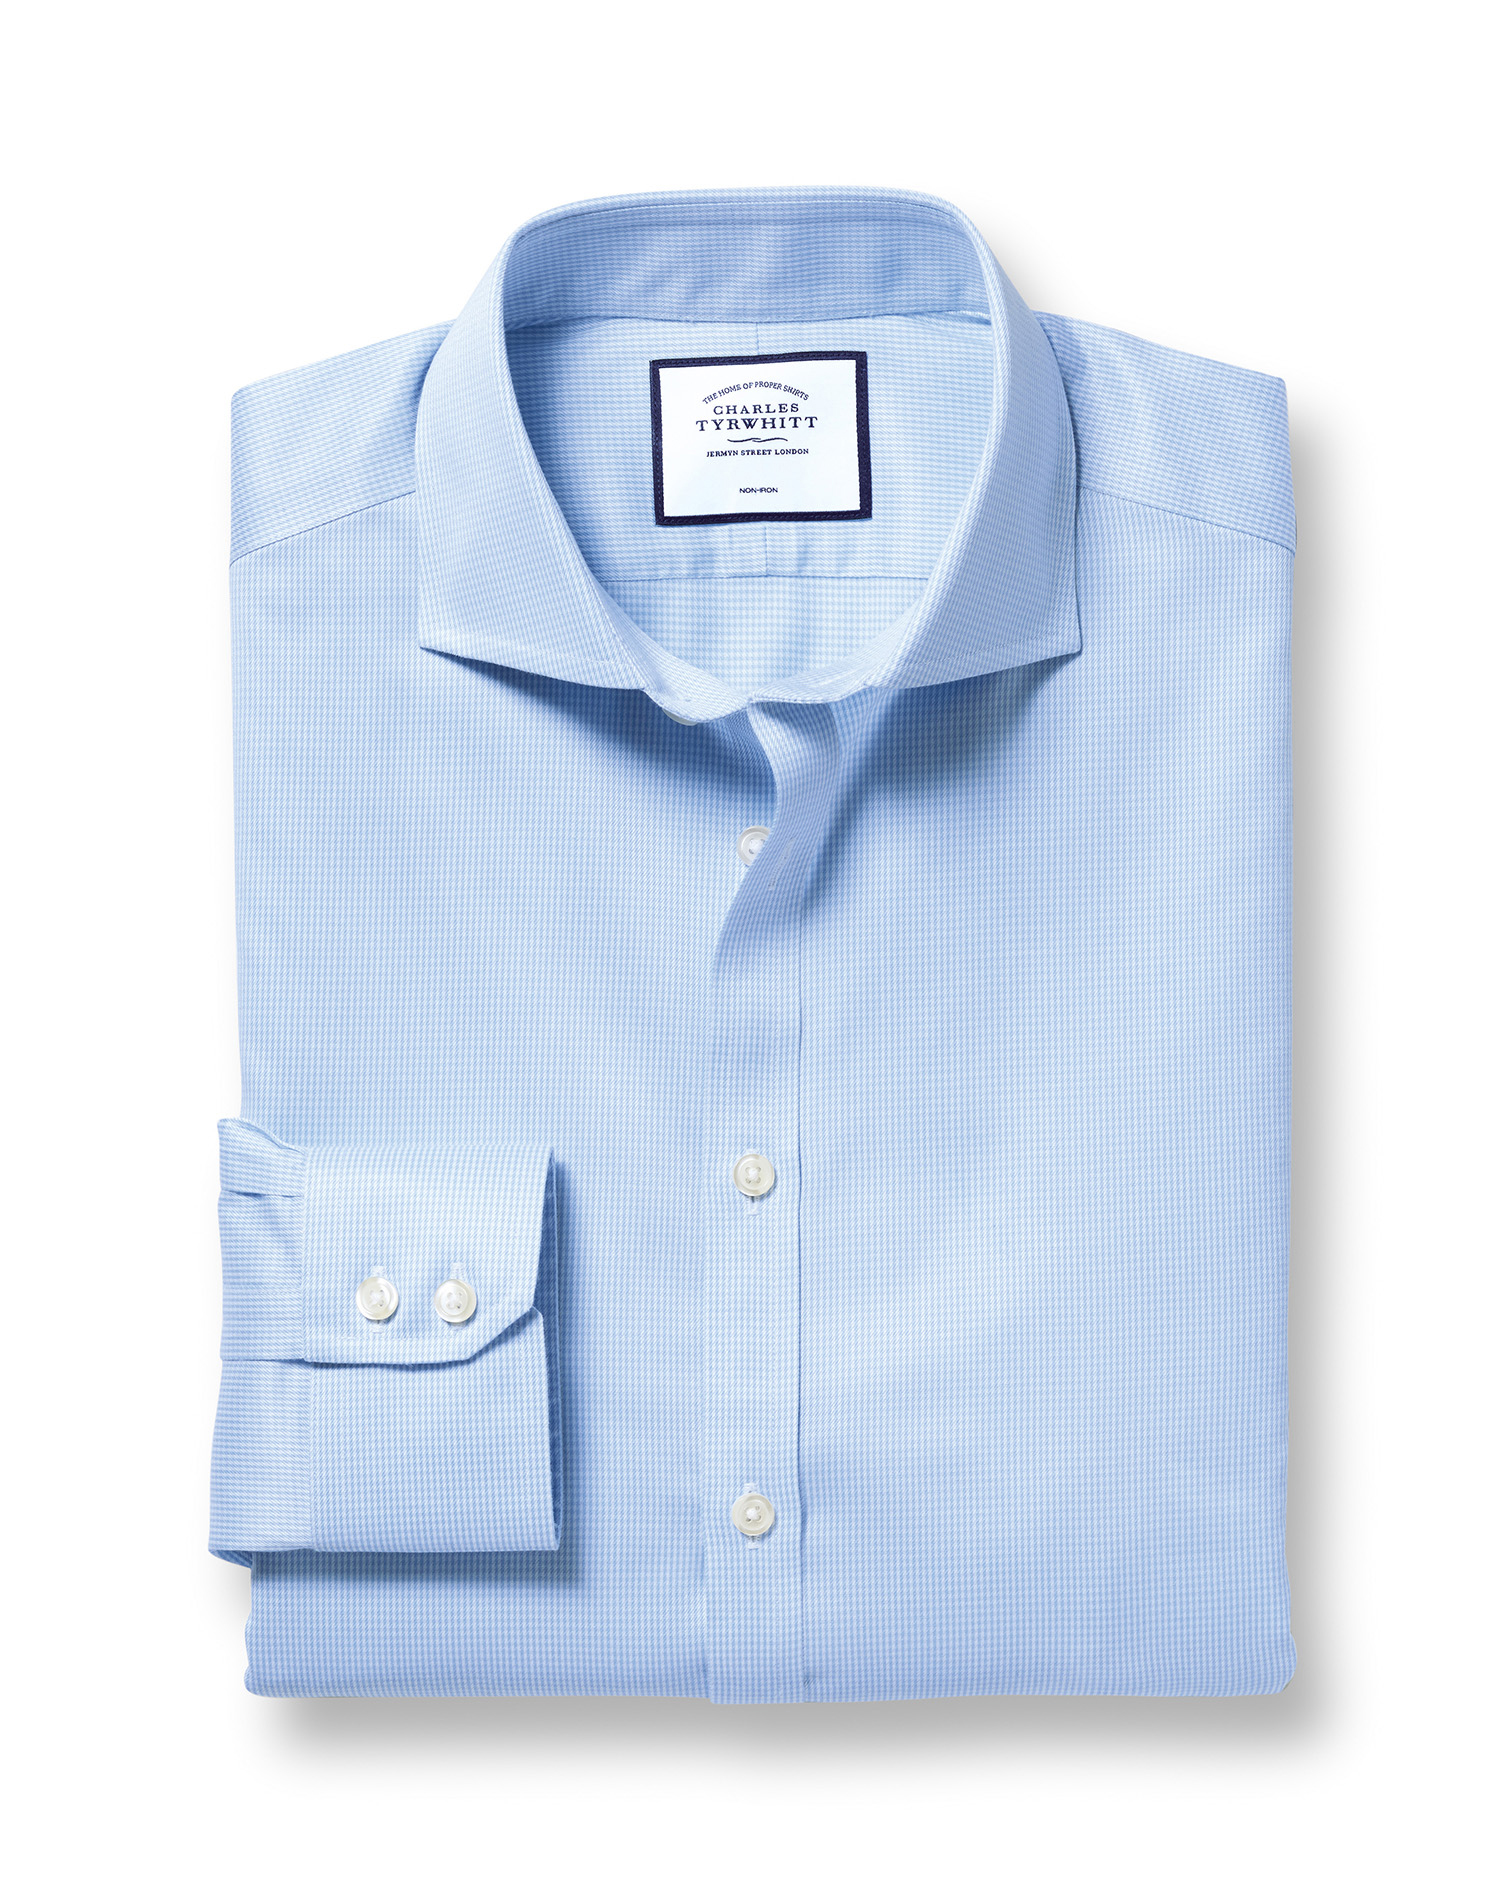 Slim Fit Cutaway Non-Iron Puppytooth Sky Blue Cotton Formal Shirt Single Cuff Size 15.5/36 by Charle